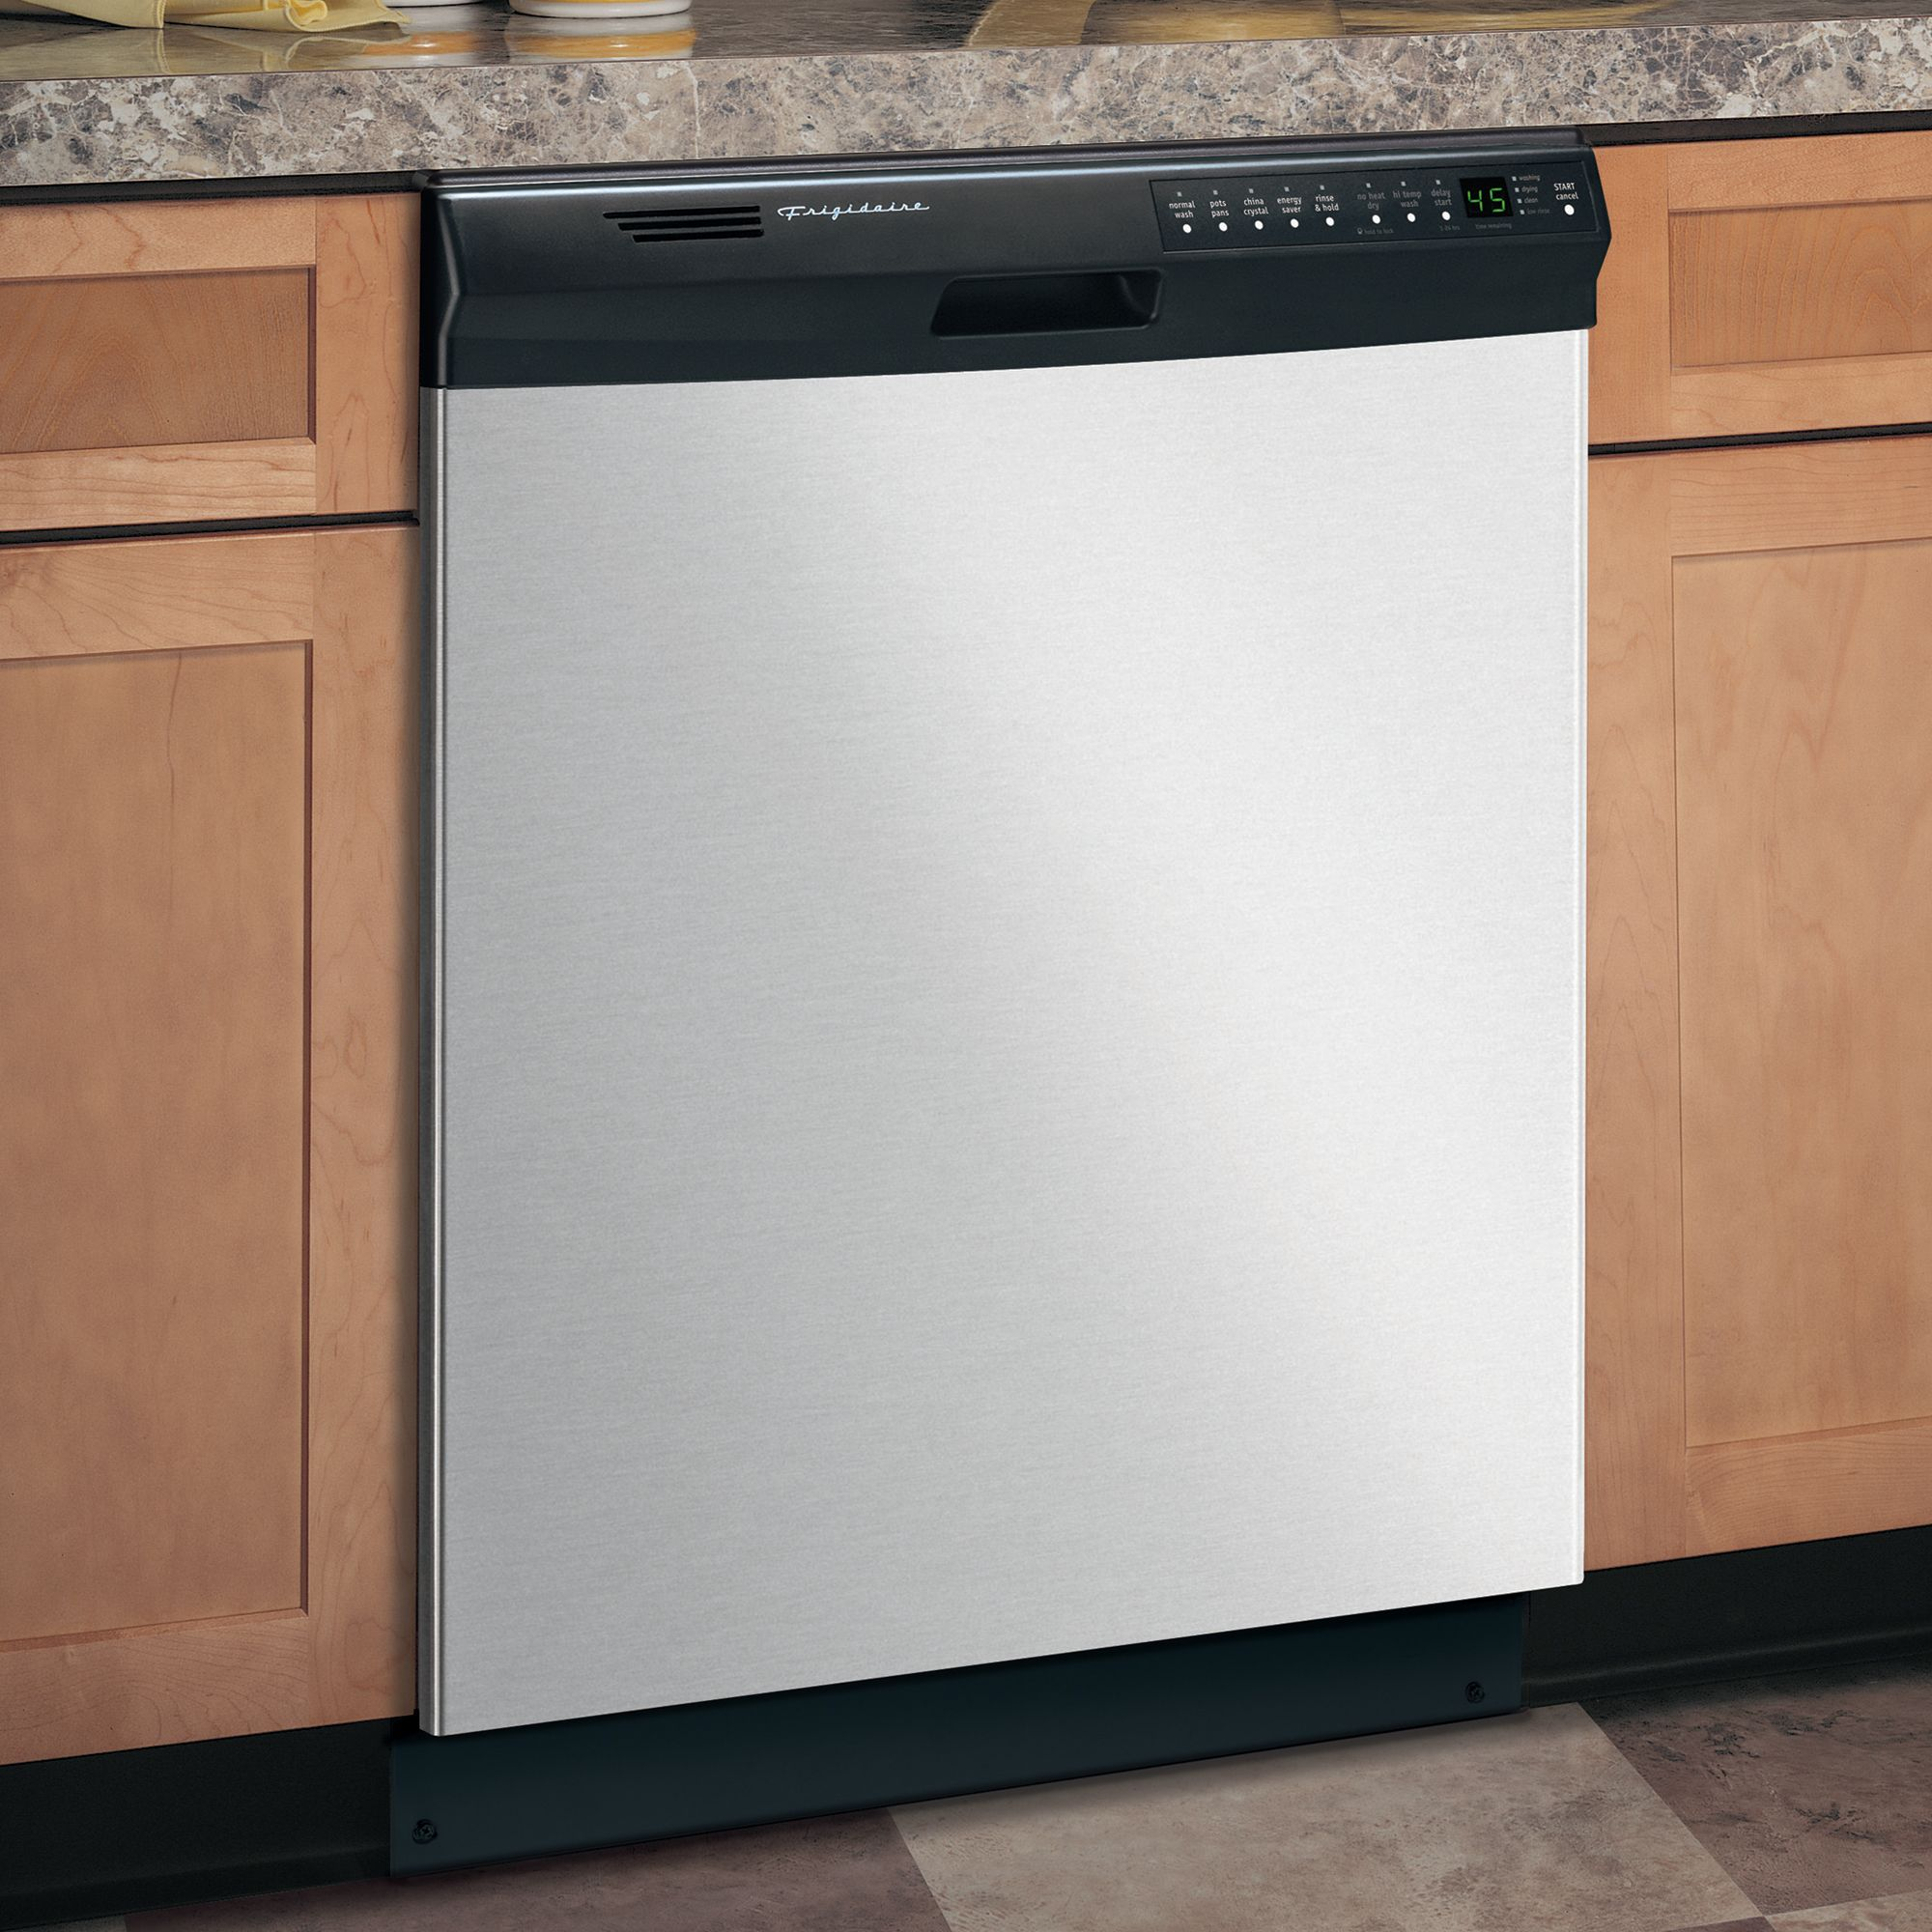 "Frigidaire 24"" Built-In Dishwasher - Stainless"